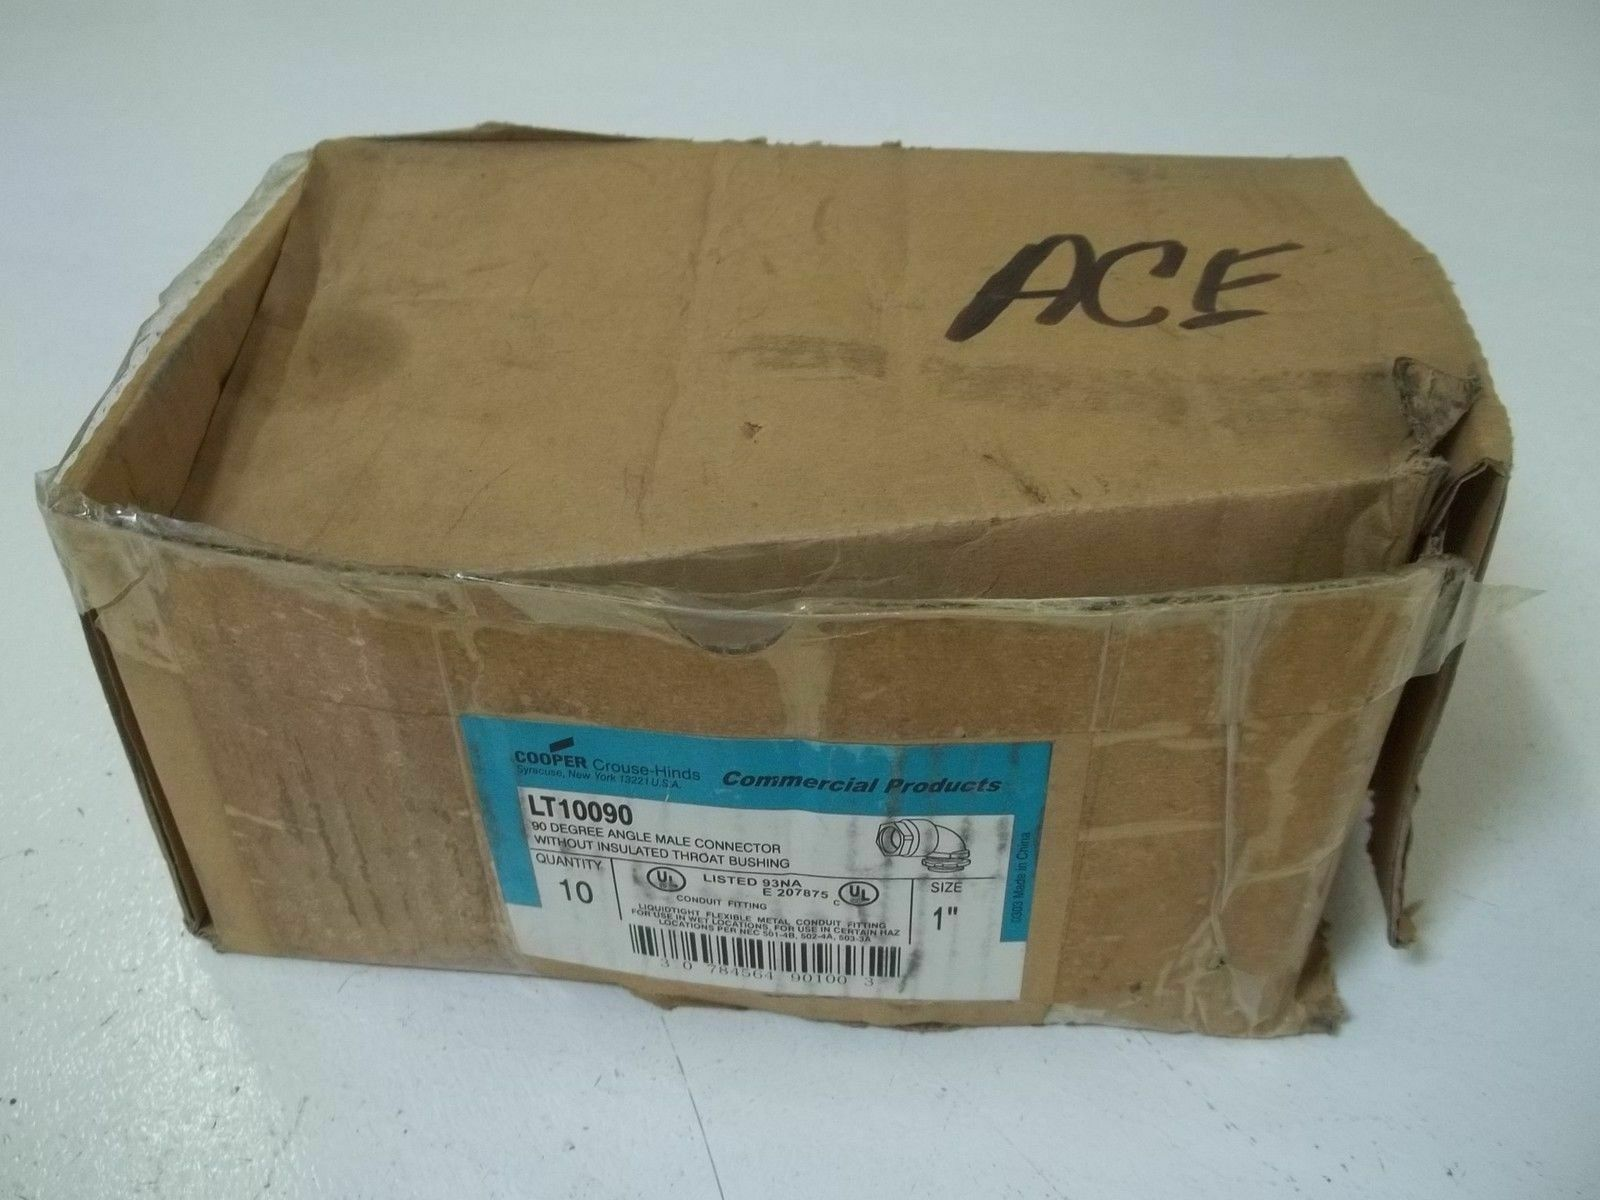 LOT OF 7 CROUSE-HINDS LT10090 90 DEGREE ANGLE MALE CONNECTOR 1  NEW IN BOX